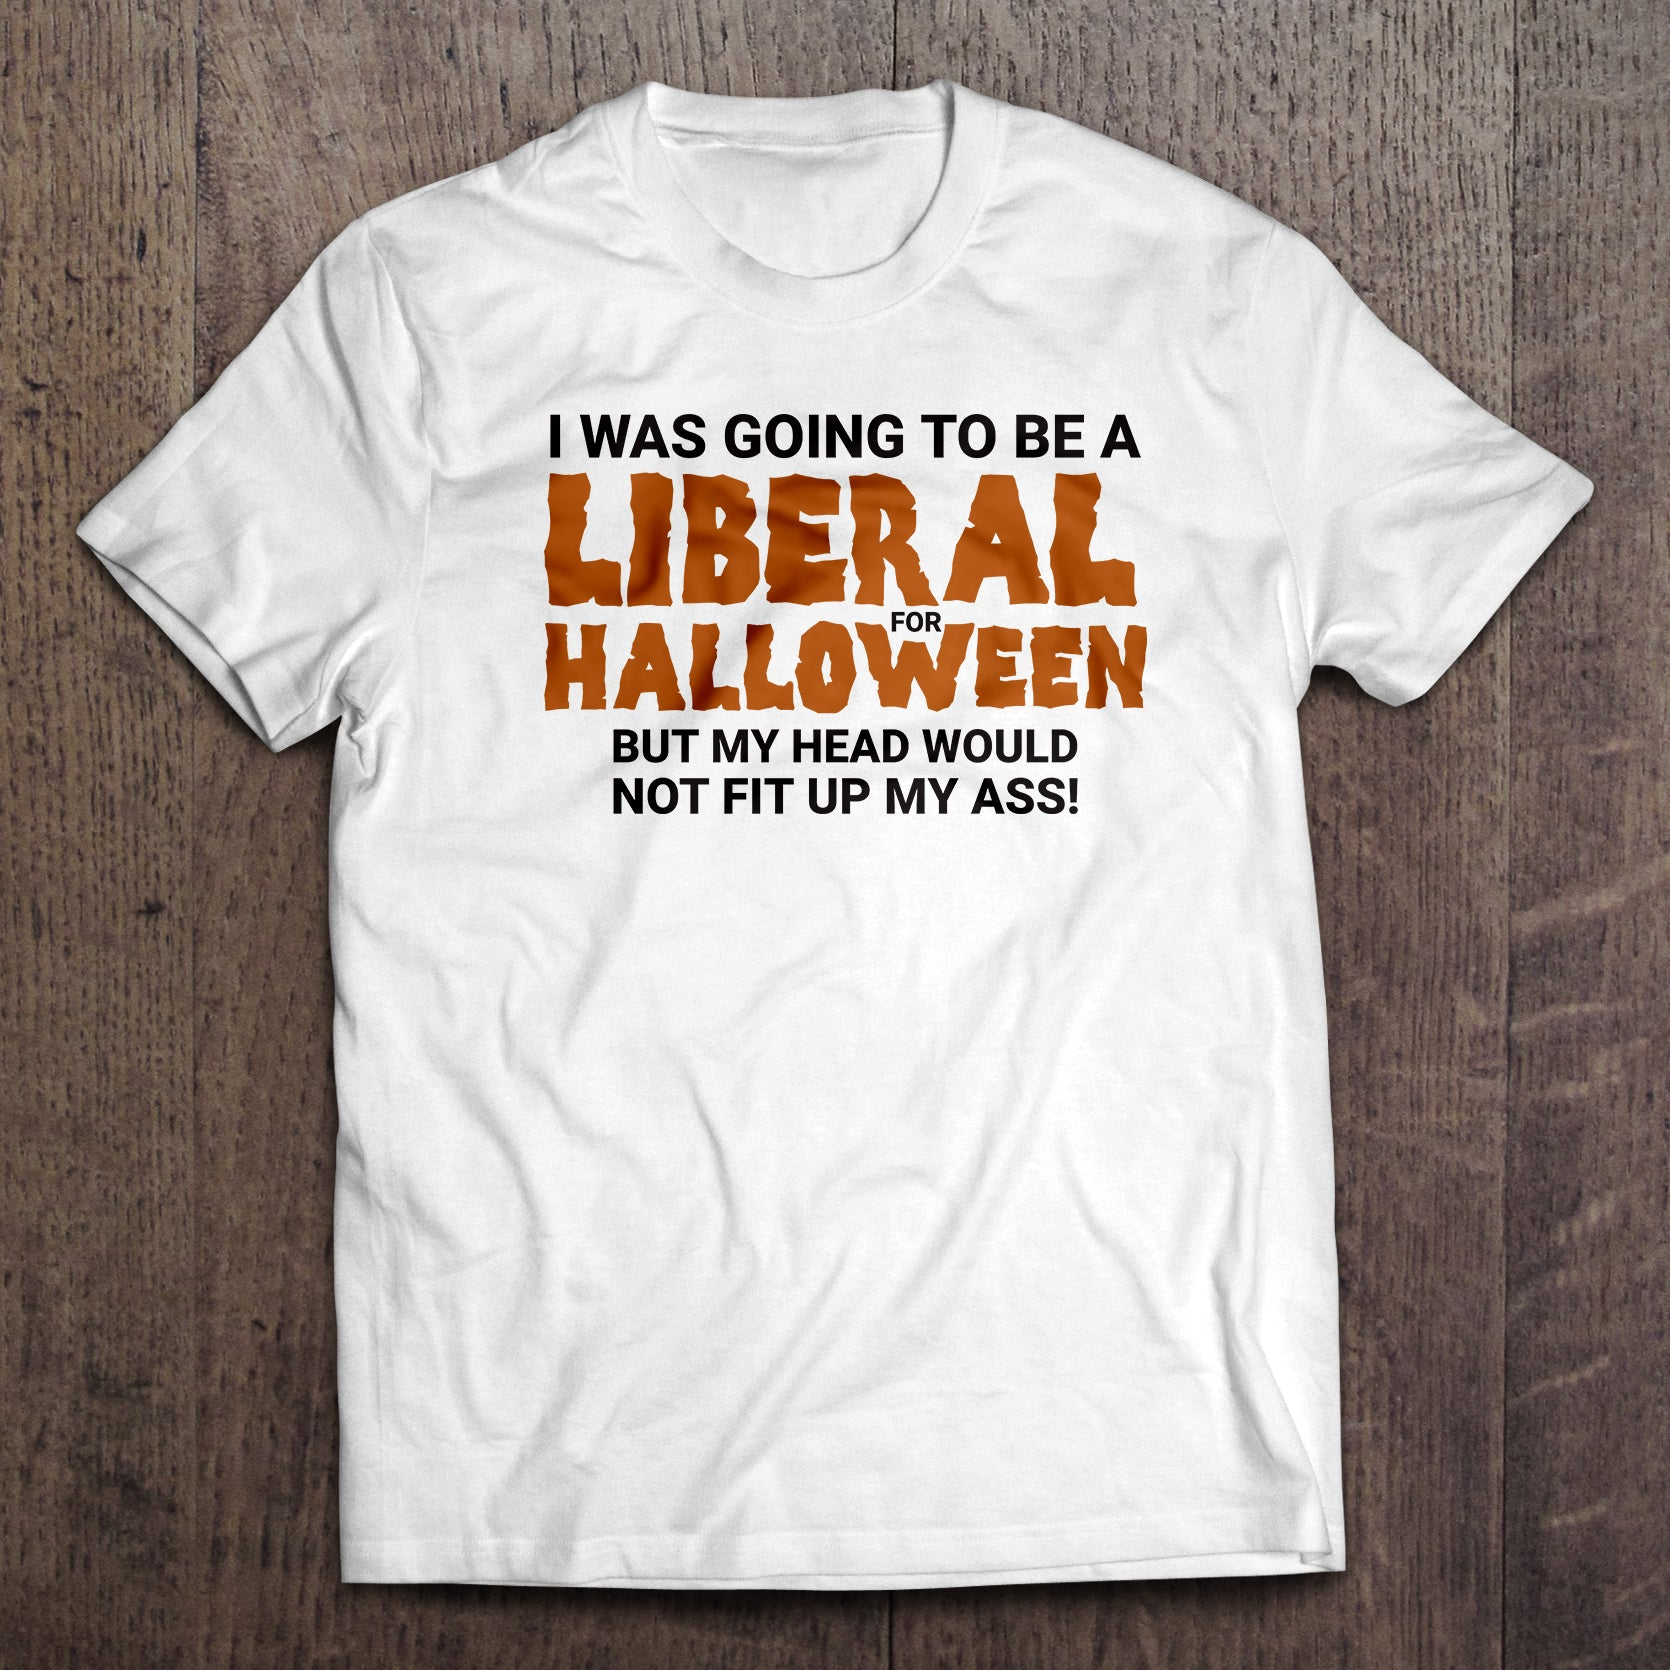 liberal for halloween conservative t-shirt (made in the usa) - keep